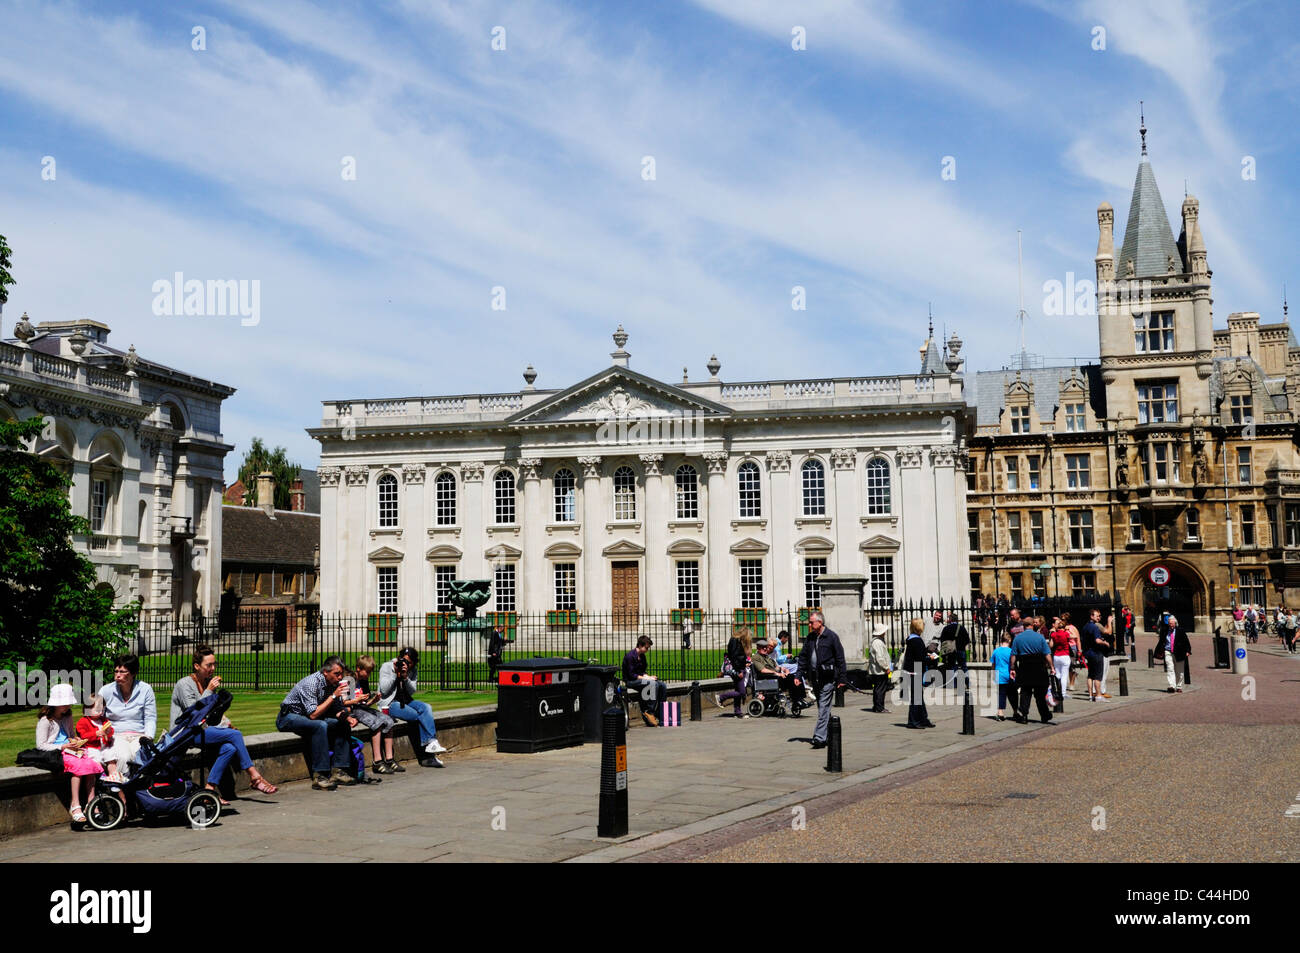 Street Scene in Kings Parade with The Senate House and Gonville and Caius College, Cambridge, England, UK - Stock Image